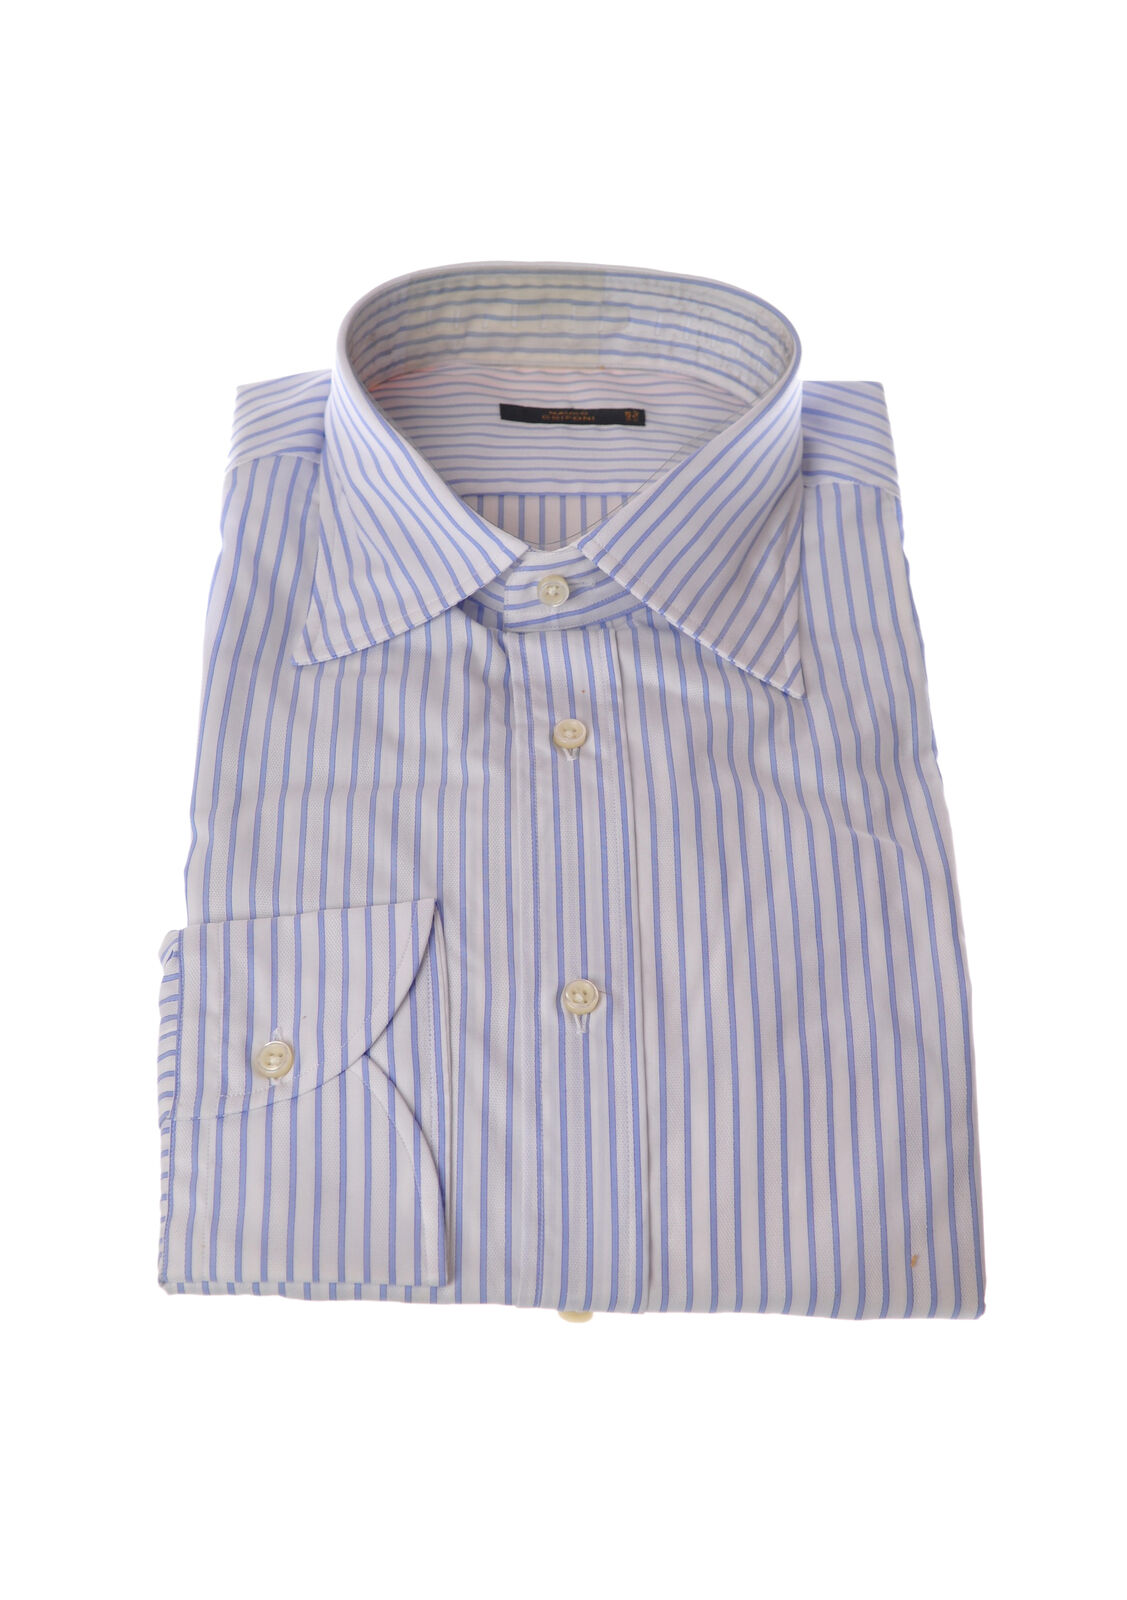 Mauro grifoni  -  Shirt - Male - White - 2999204A184103